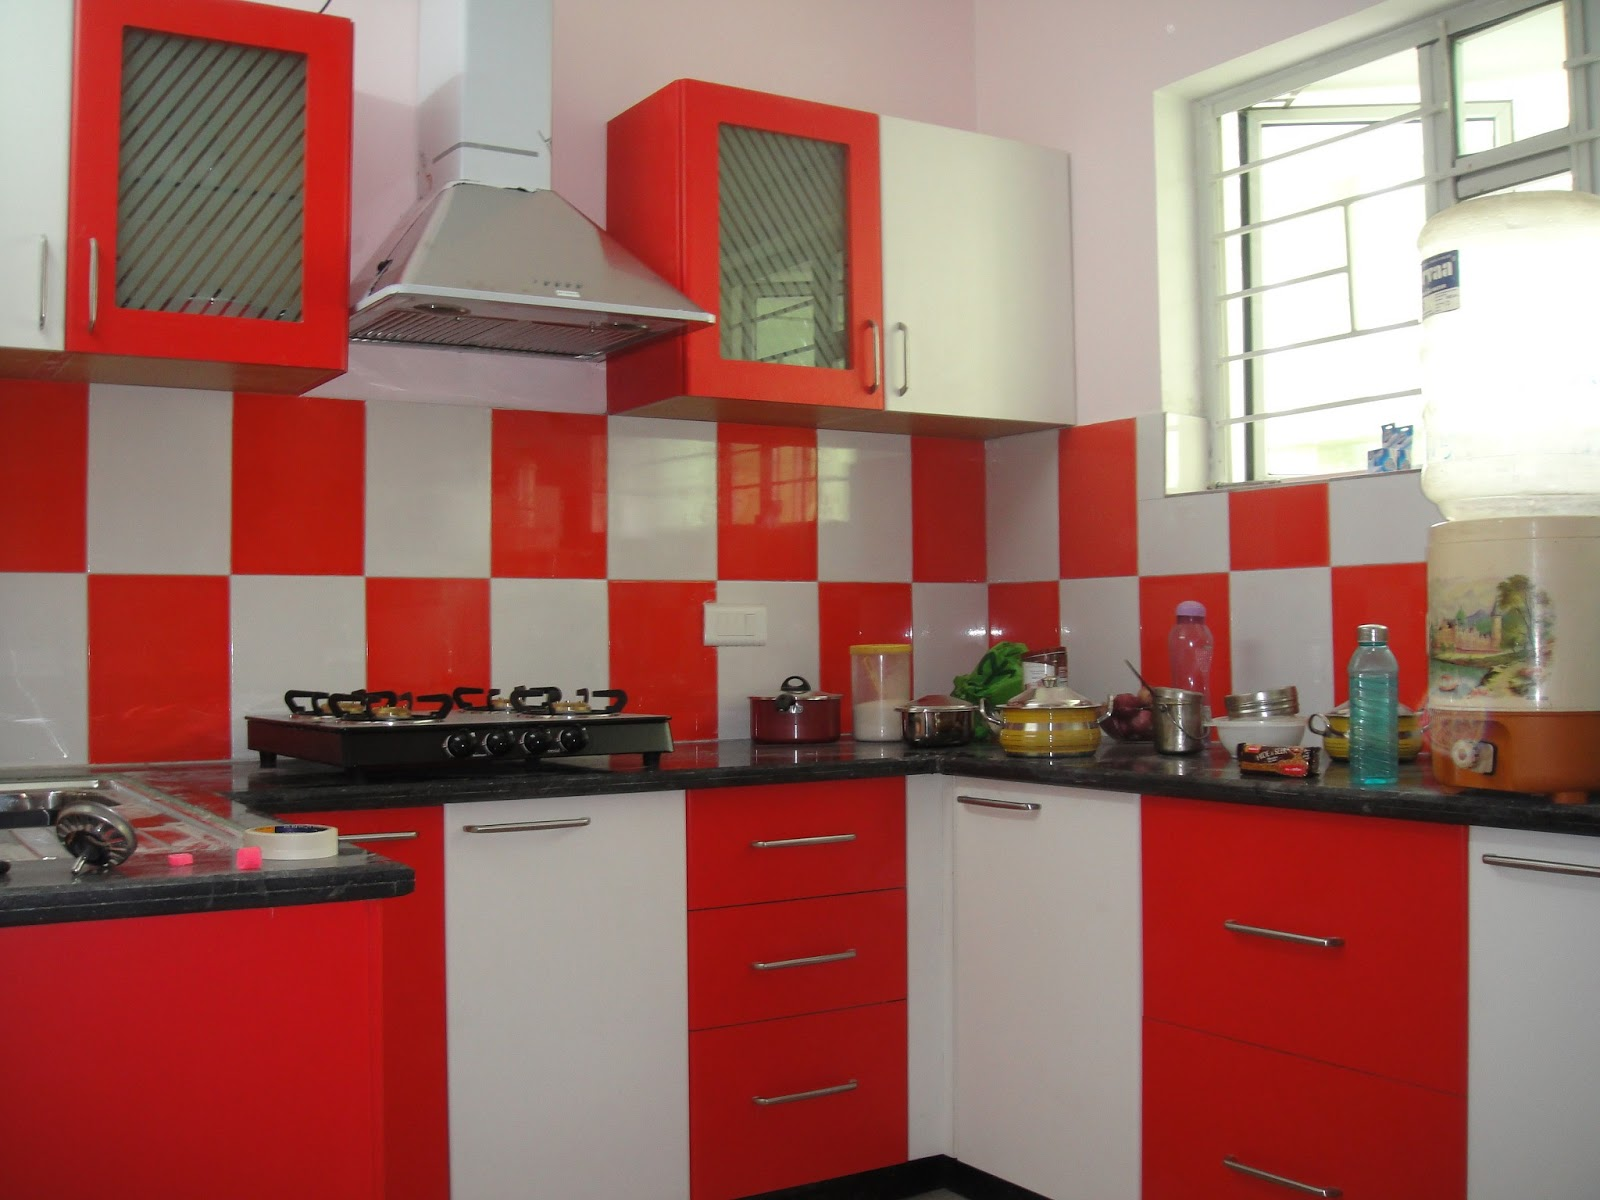 Low Price Modular Kitchen In Chennai | Designs Of Modular Kitchen on modular kitchen in bangalore, modular kitchen in hyderabad, modular kitchen in mumbai, modular kitchen in kerala, marriage halls in chennai,